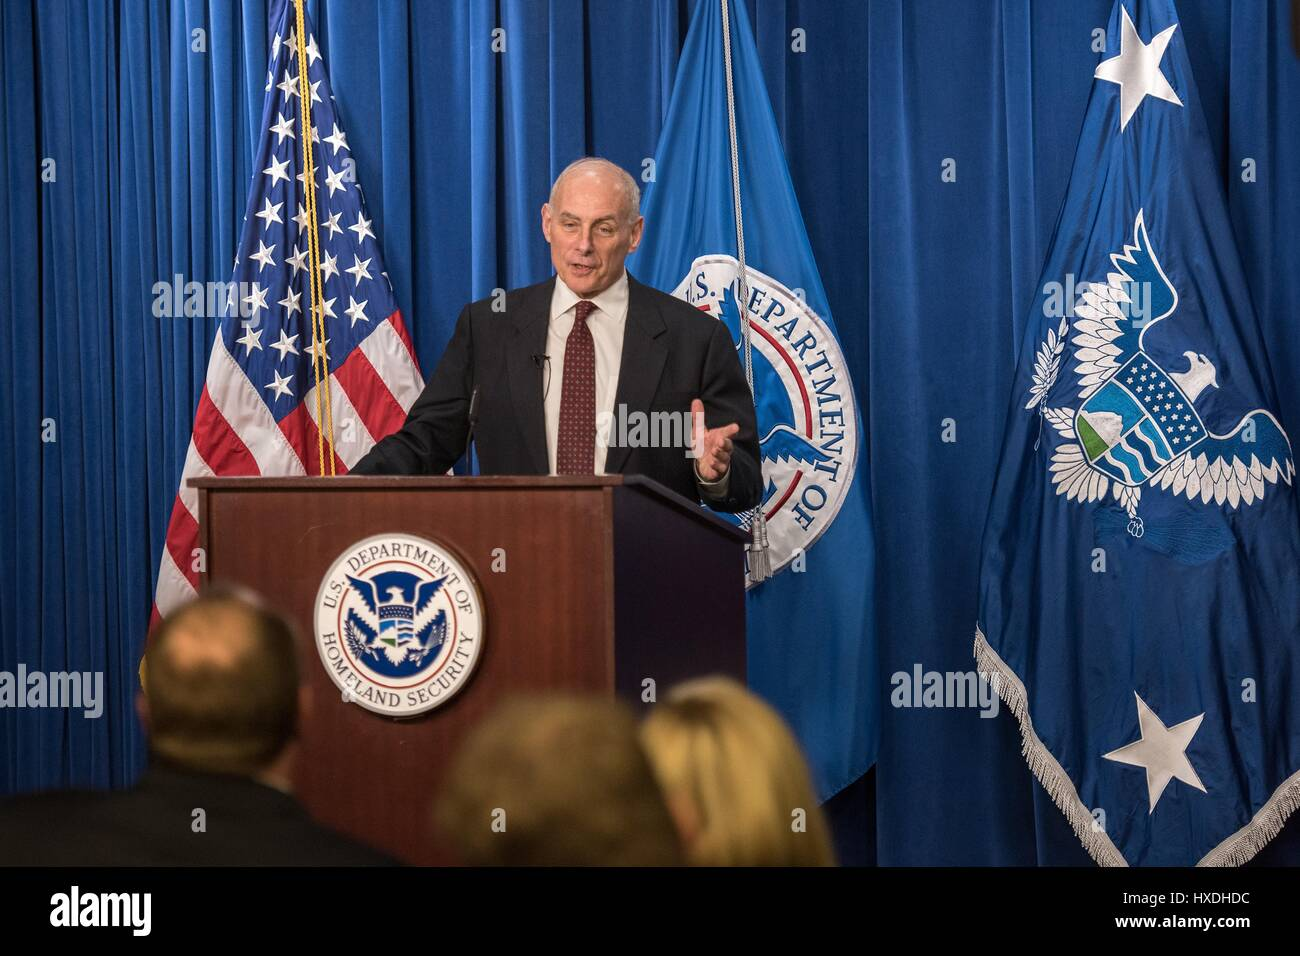 U.S. Secretary of Homeland Security John Kelly speaks to employees during a Town Hall meeting at Immigration and - Stock Image